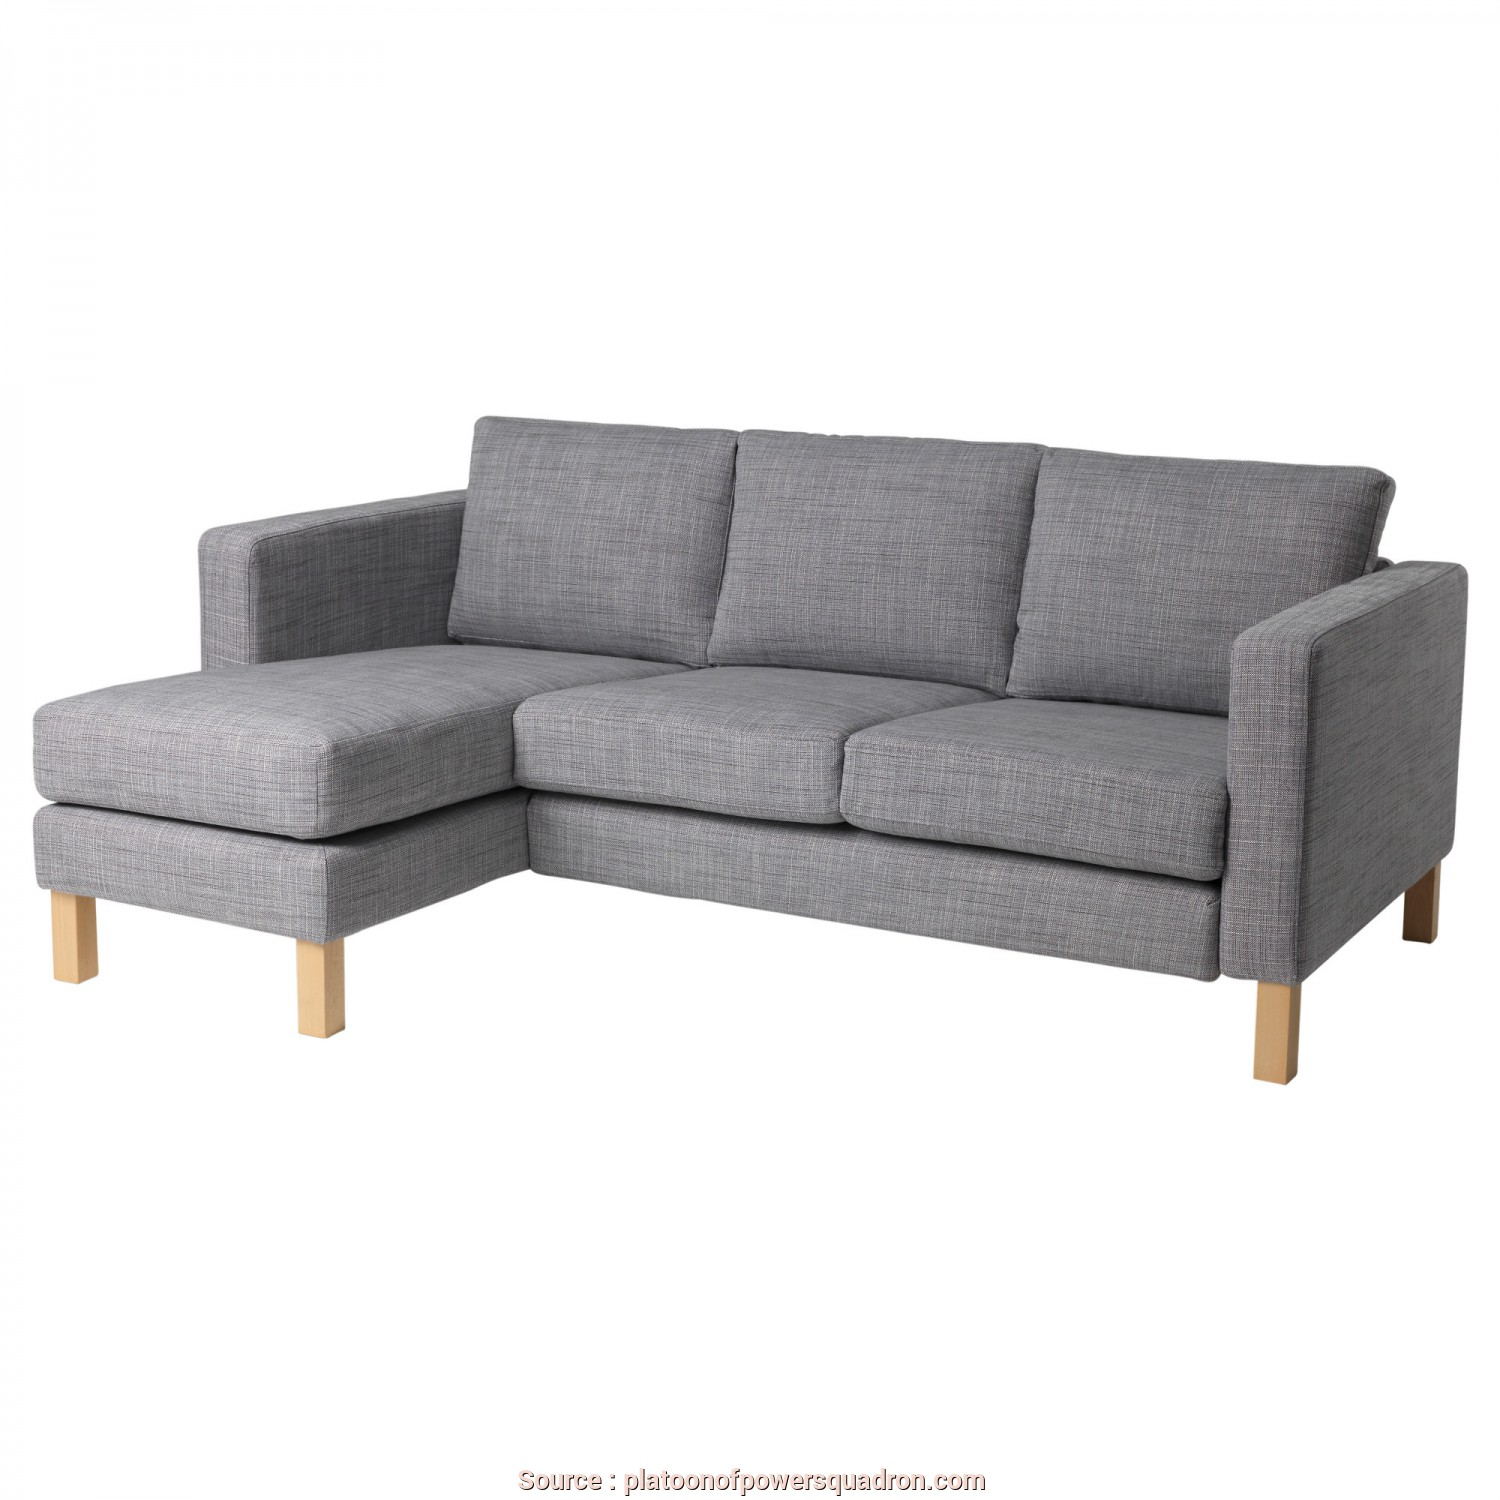 Futon Ikea Barcelona, Bella Furniture: Choose Your Best Futons Ikea Style That Suits Your